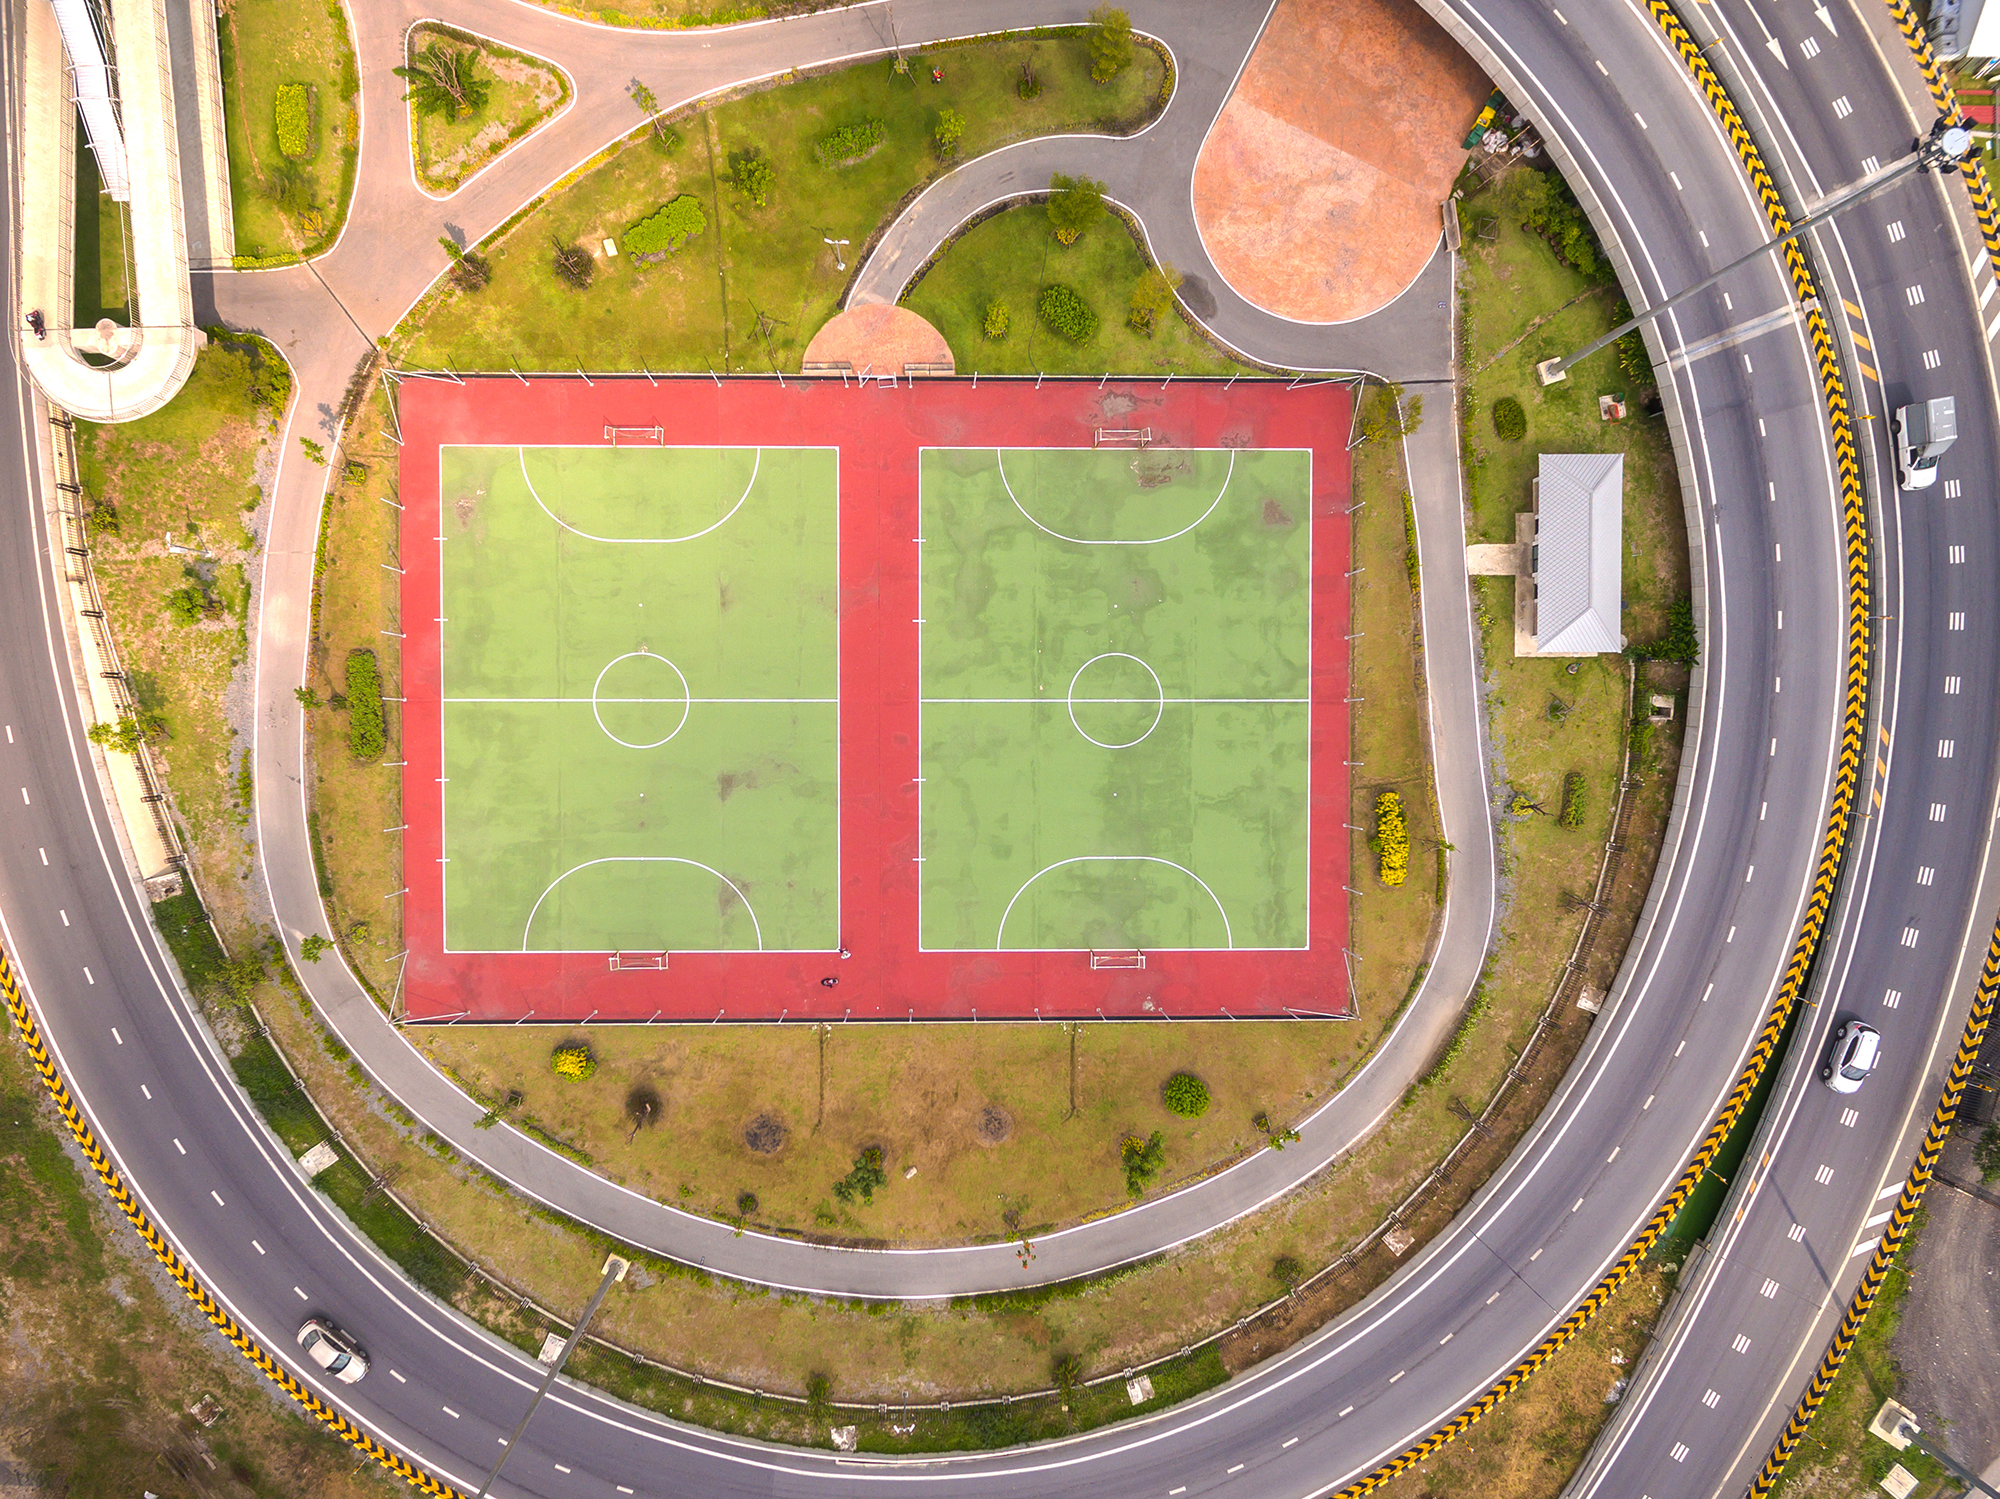 Aerial view of sports complex run by Sports Facilities Management